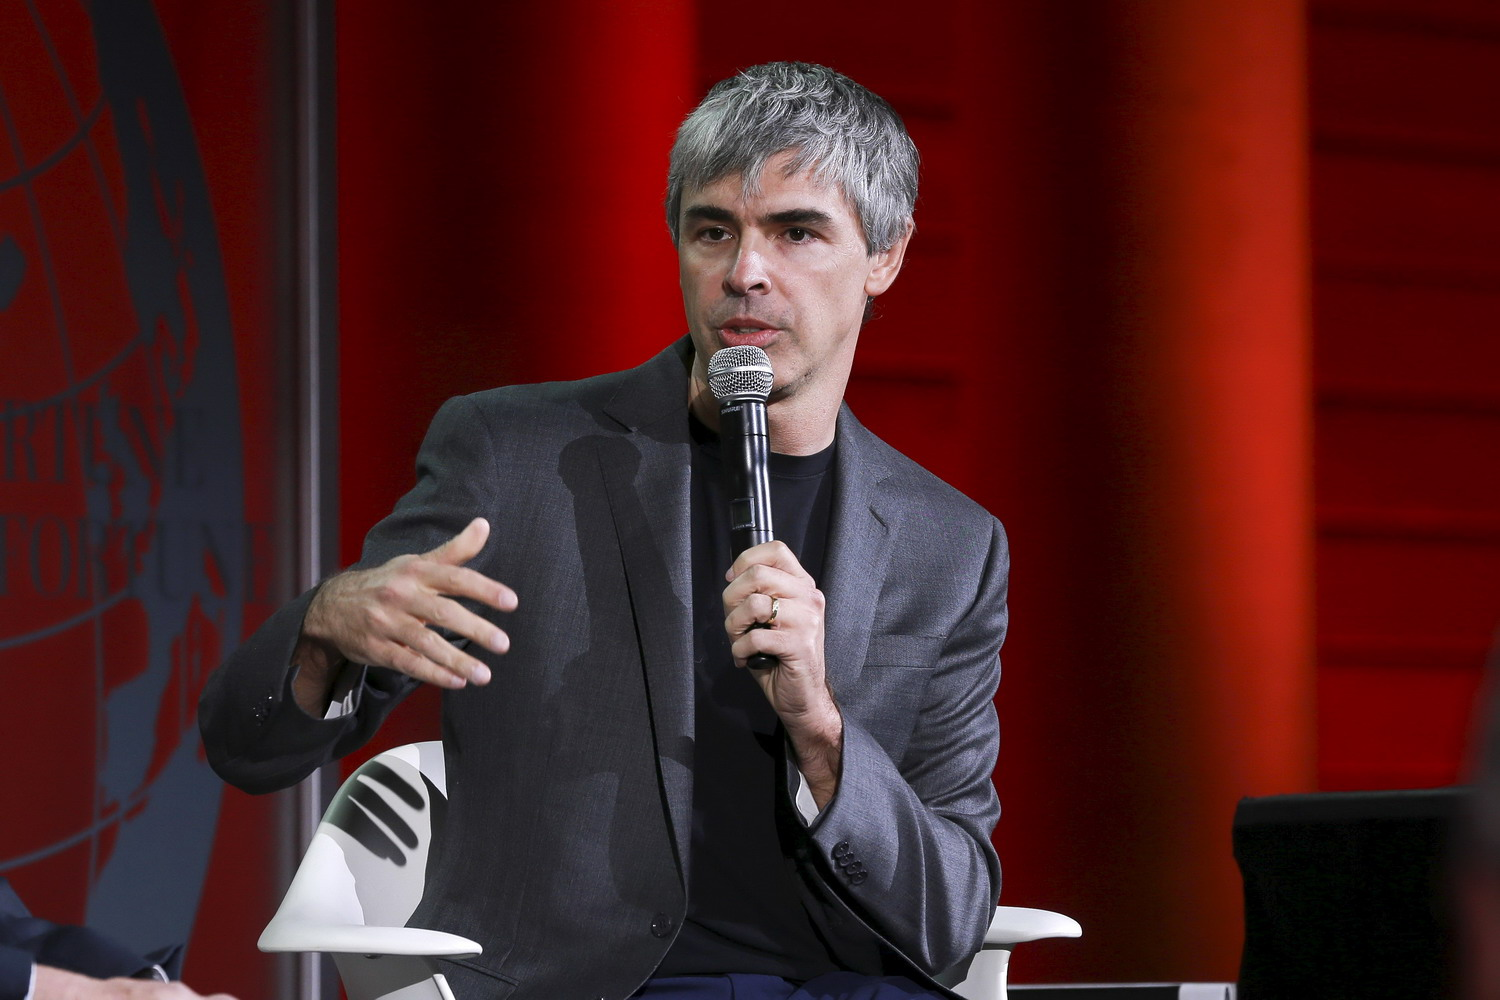 In Rare Appearance, Larry Page Discusses New Alphabet